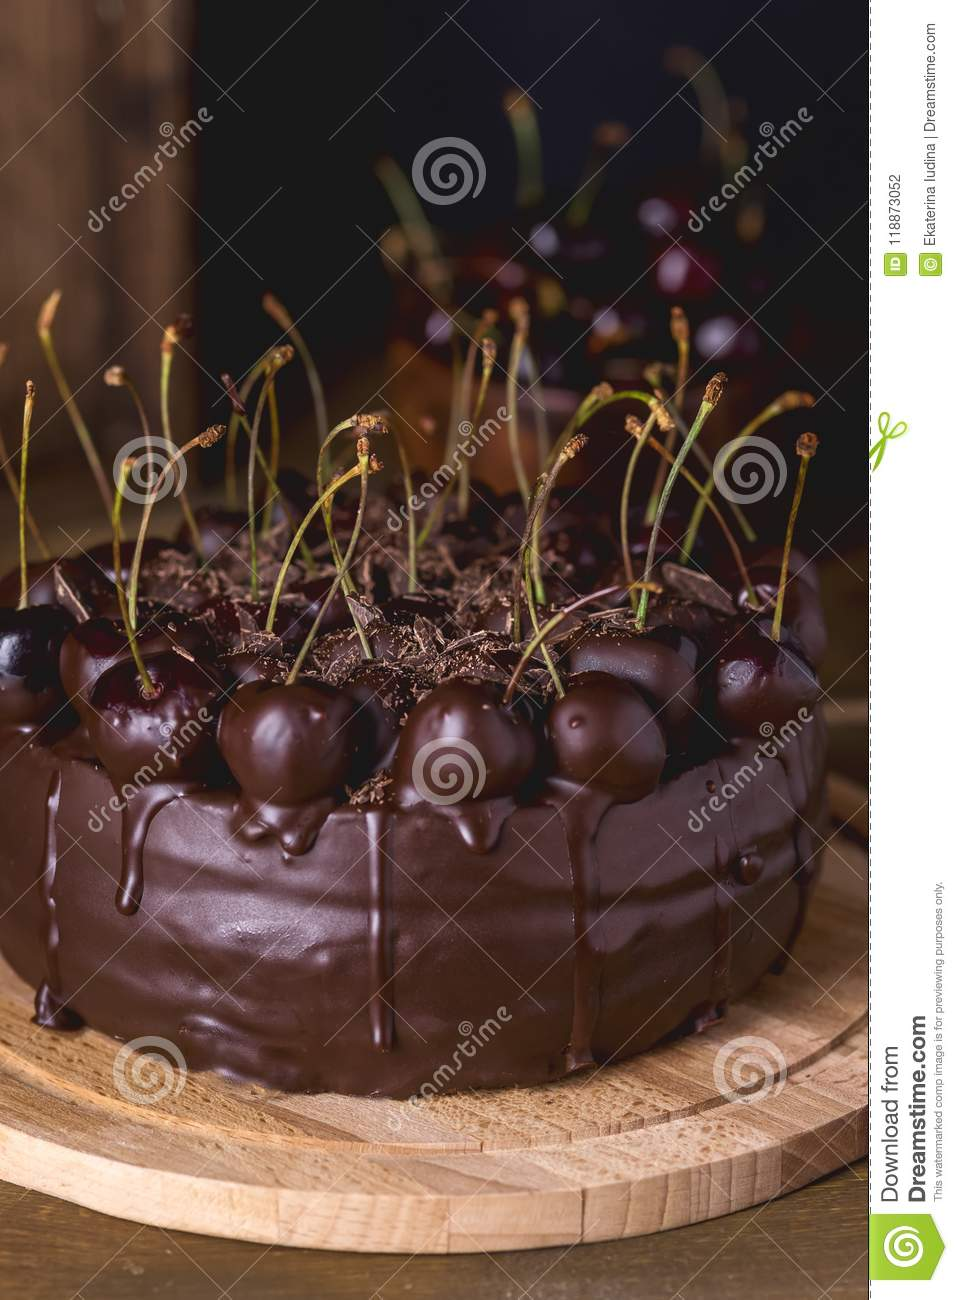 Chocolate Cake Decorated With Cherries With Chocolate Vertical